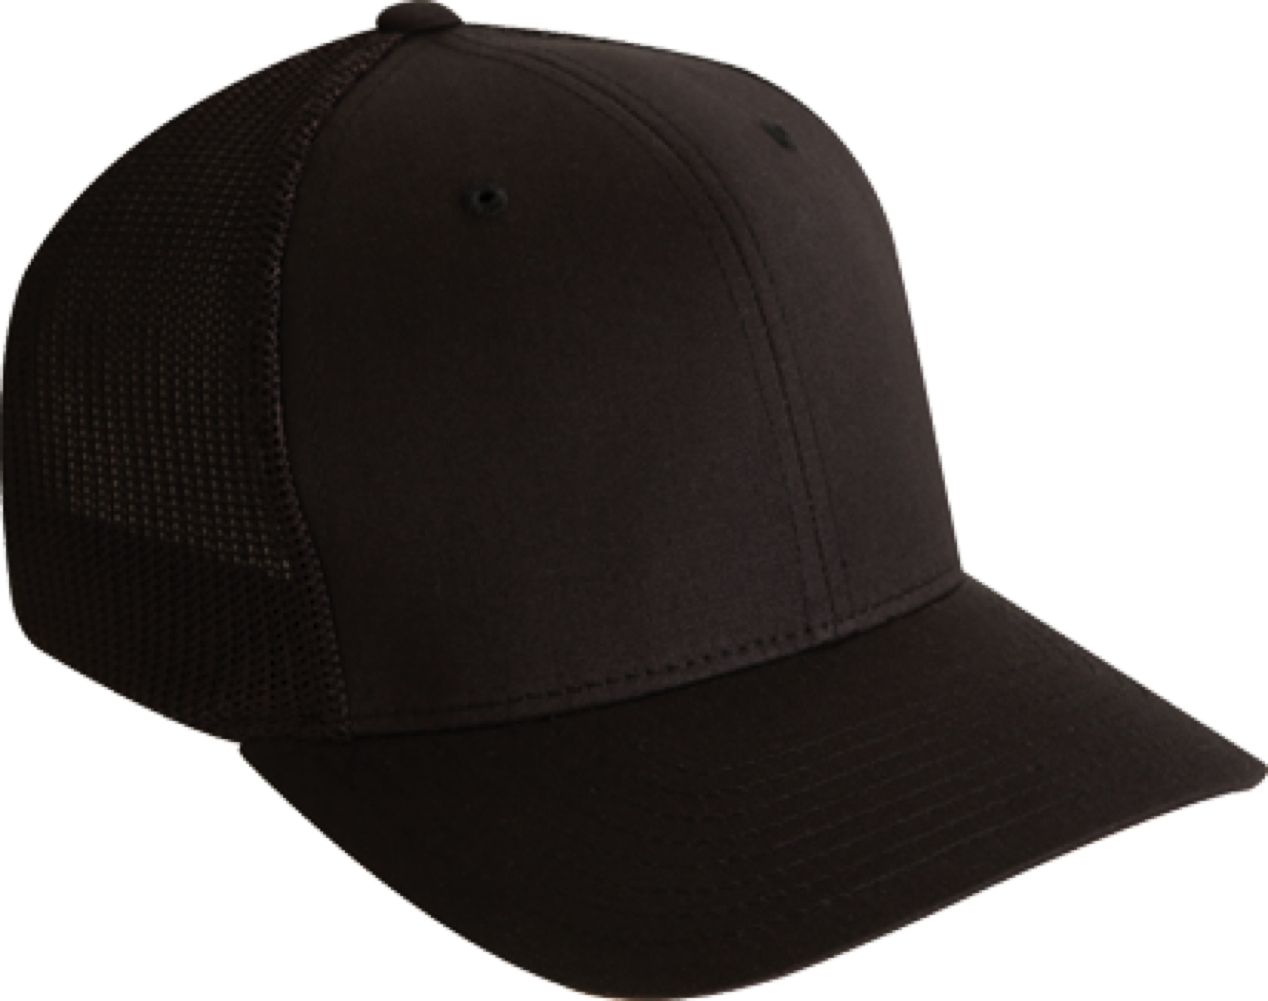 Black Trucker Hats Tag